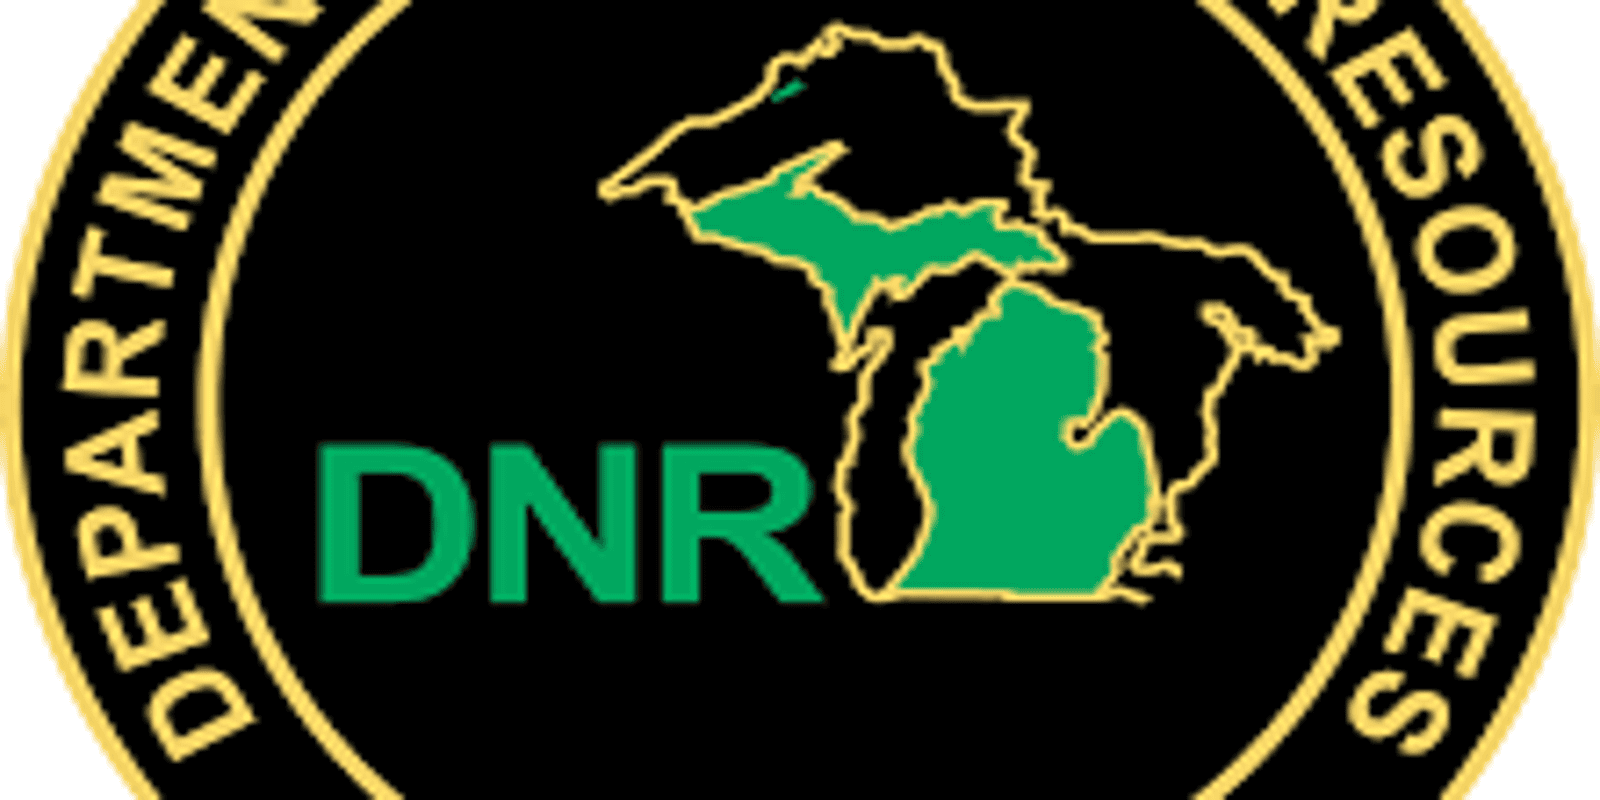 Michigan crews to conduct fishery research in Great Lakes